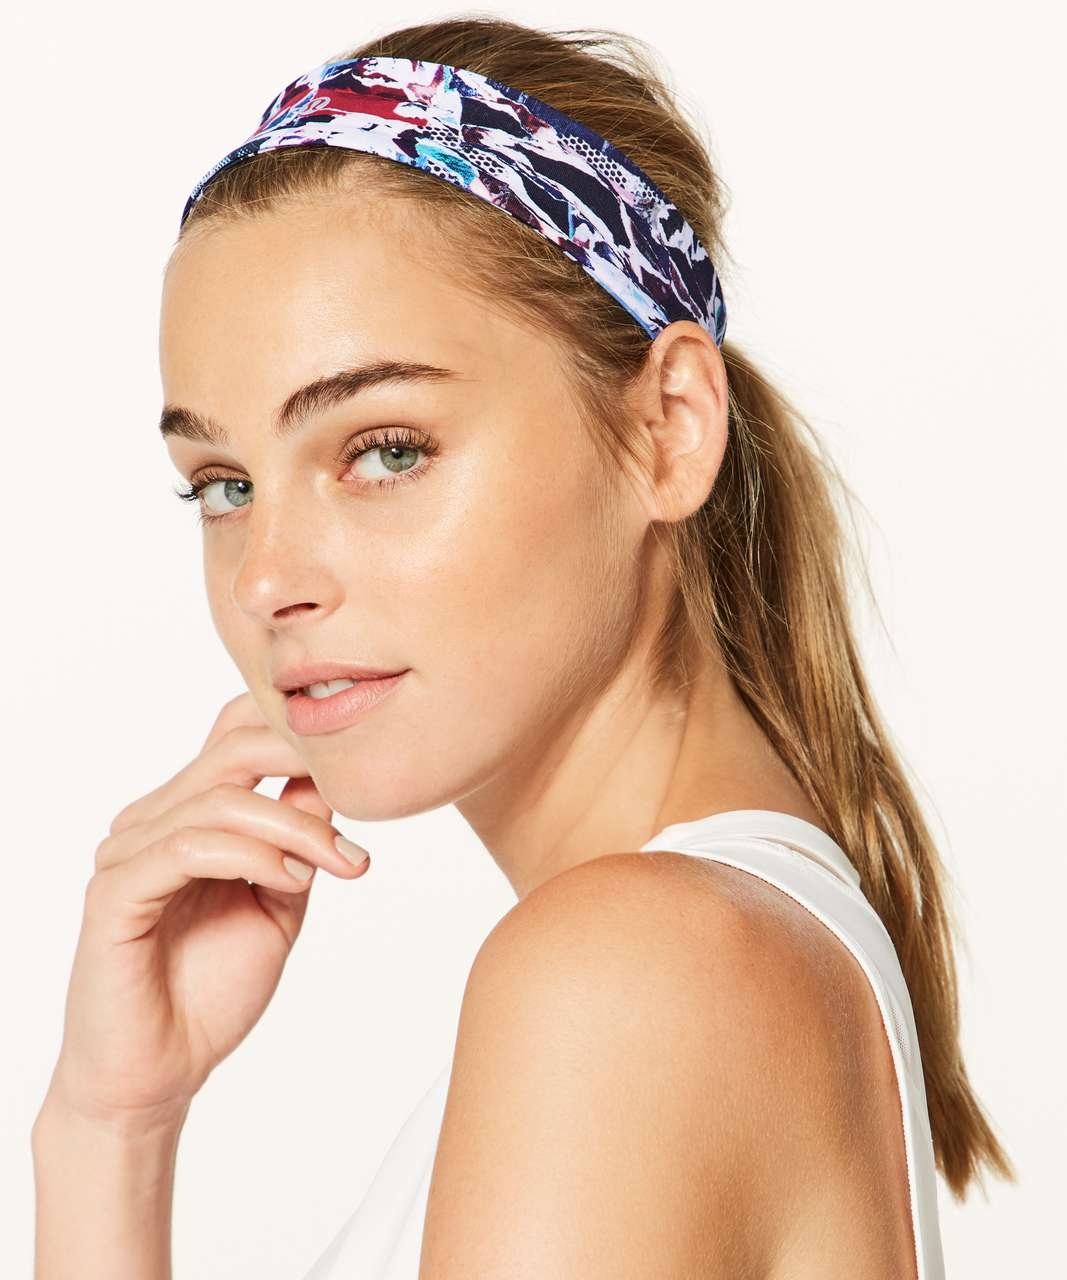 Lululemon Fly Away Tamer Headband II *Luxtreme - Culture Clash Multi Black